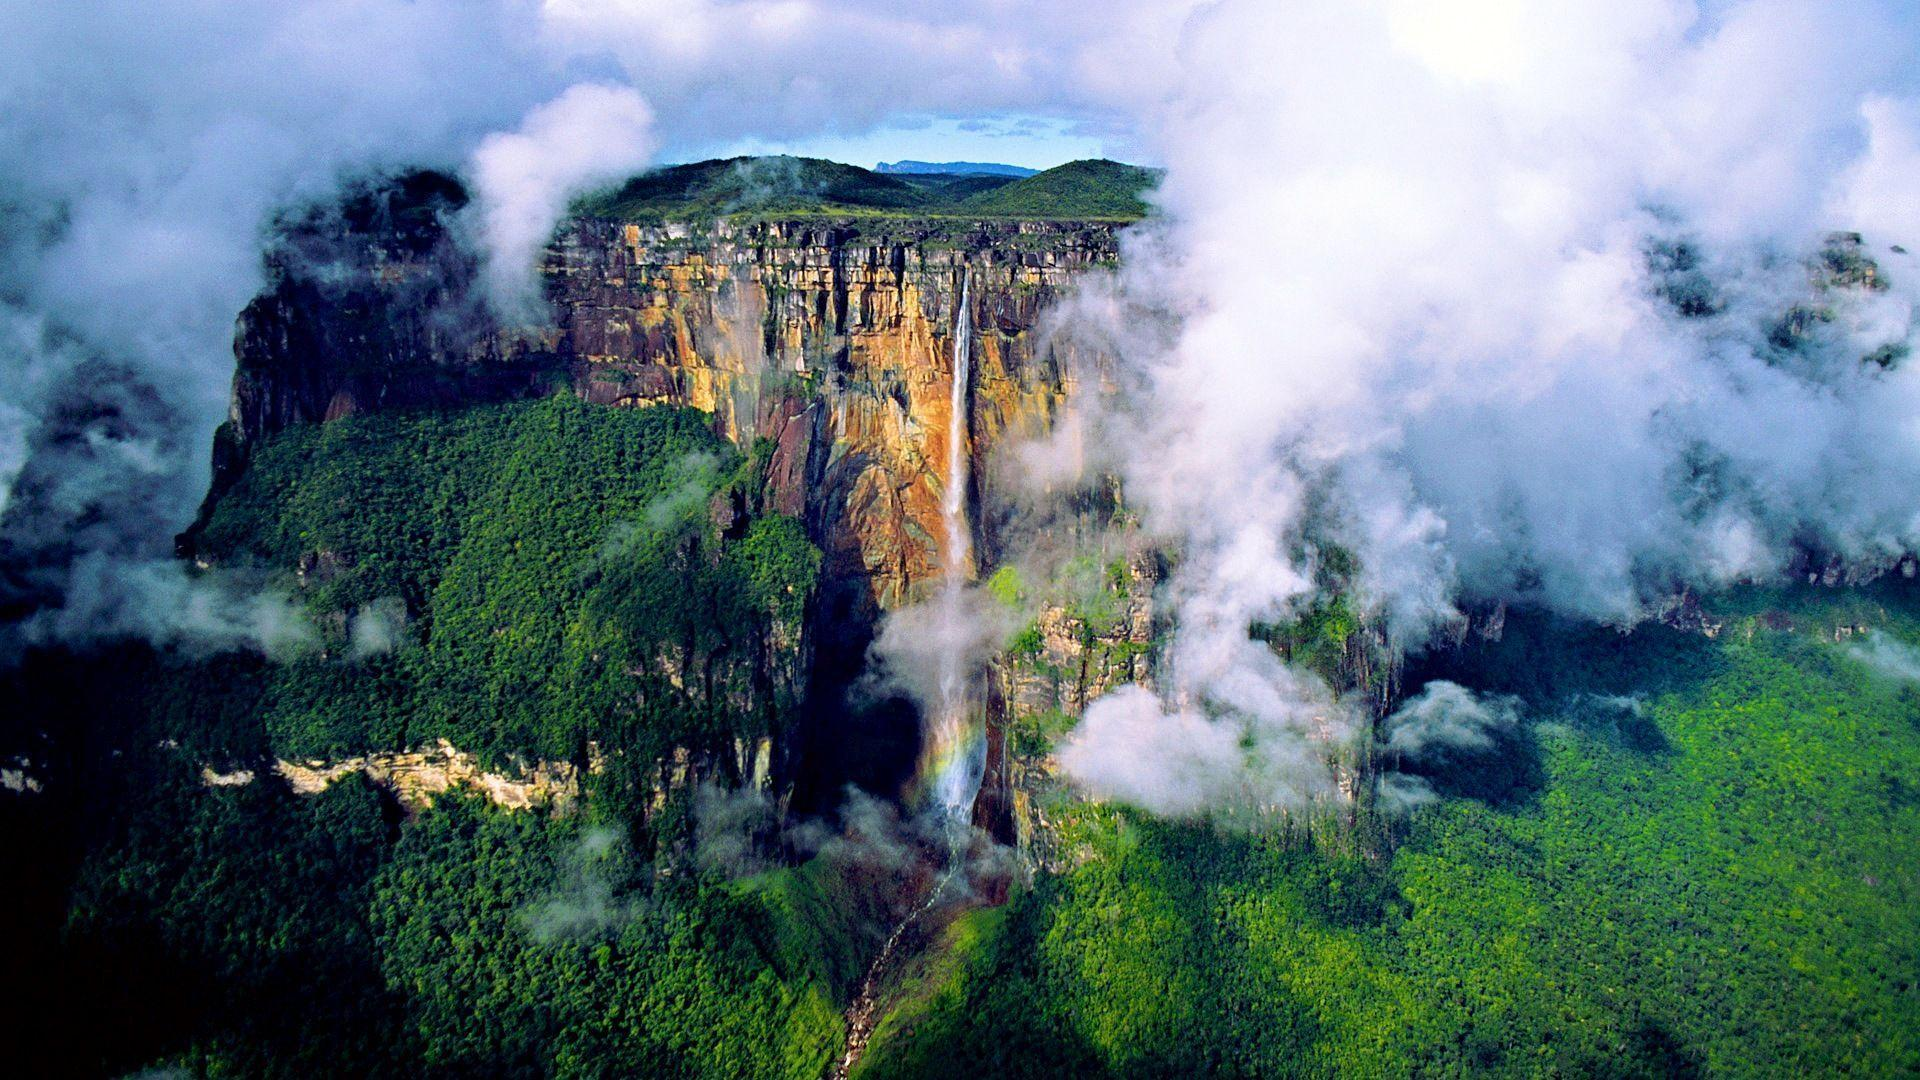 angel falls wallpaper - photo #14